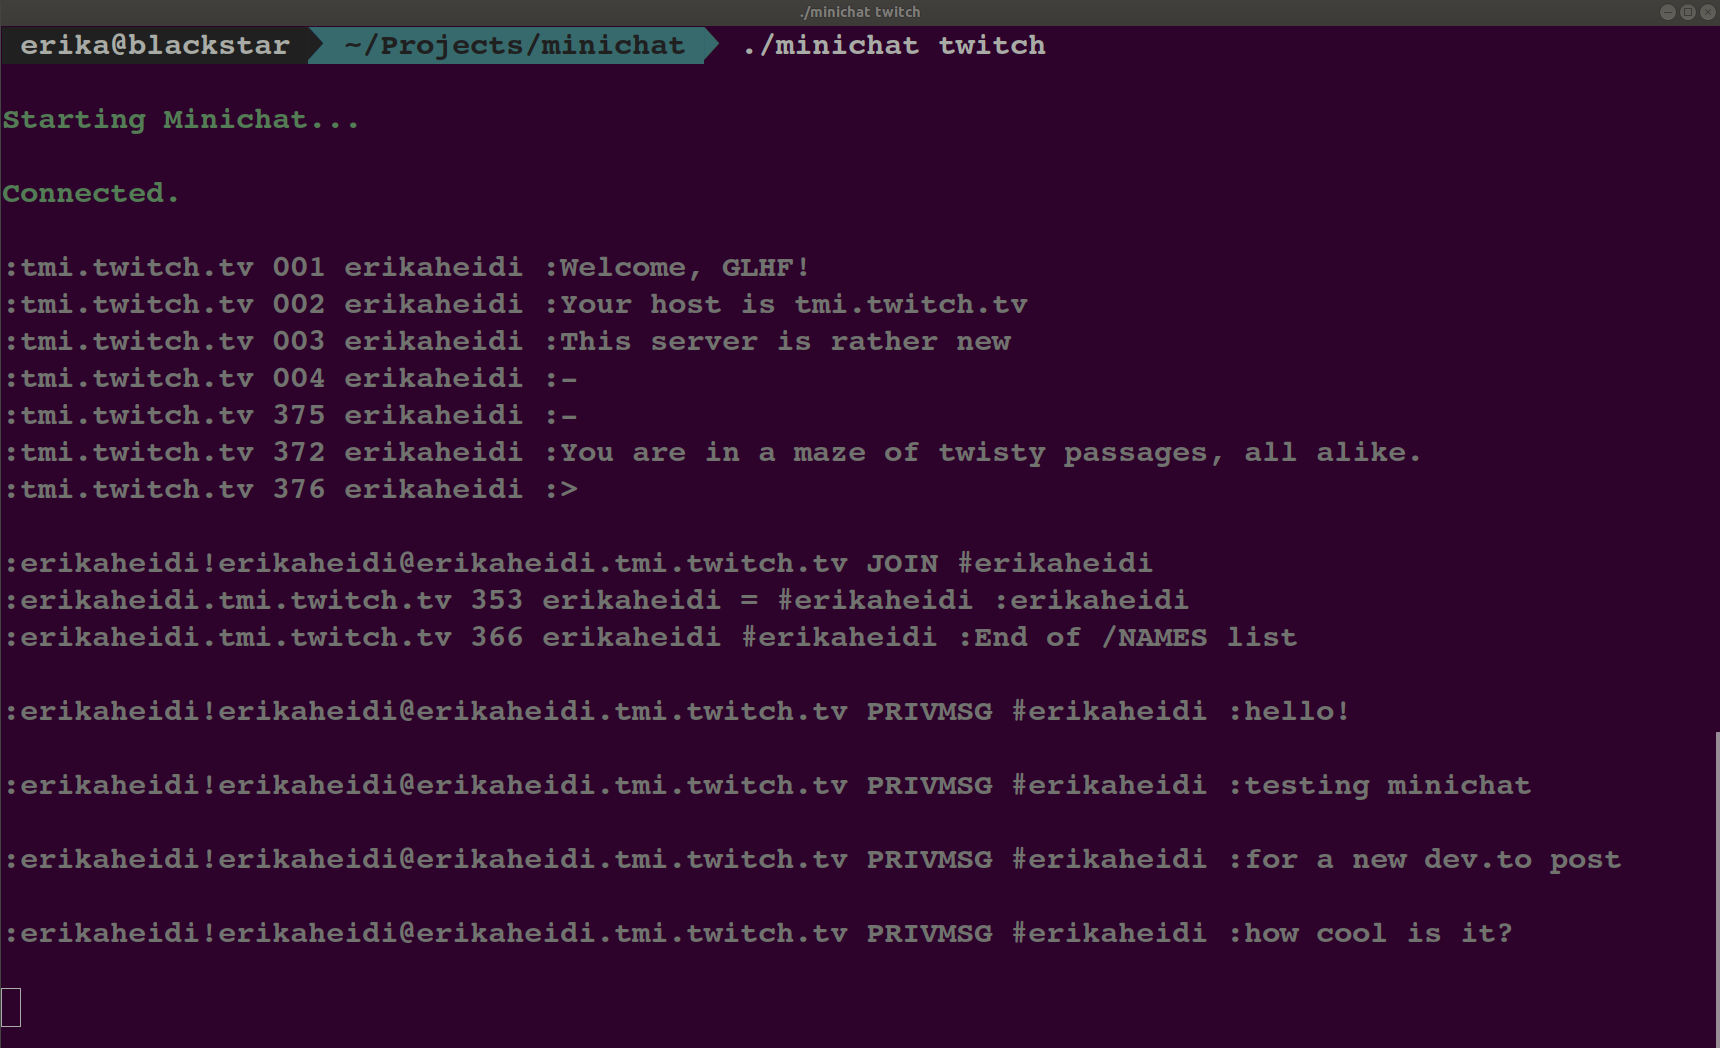 terminal chat output